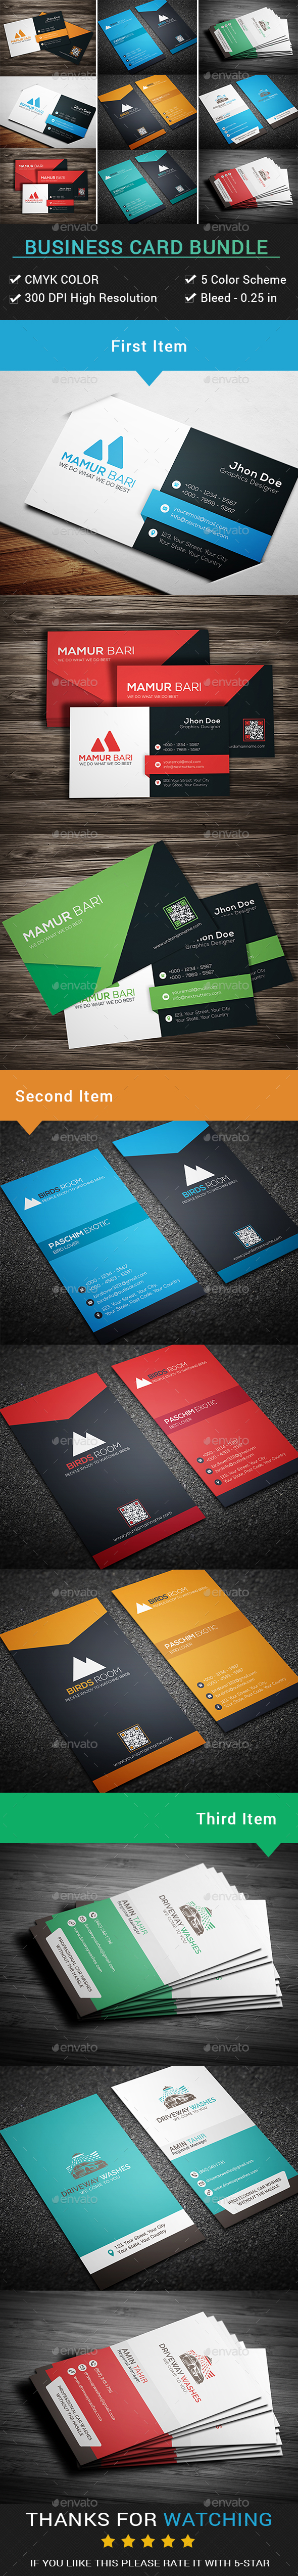 Business Card Bundle (3 in 1) - Business Cards Print Templates